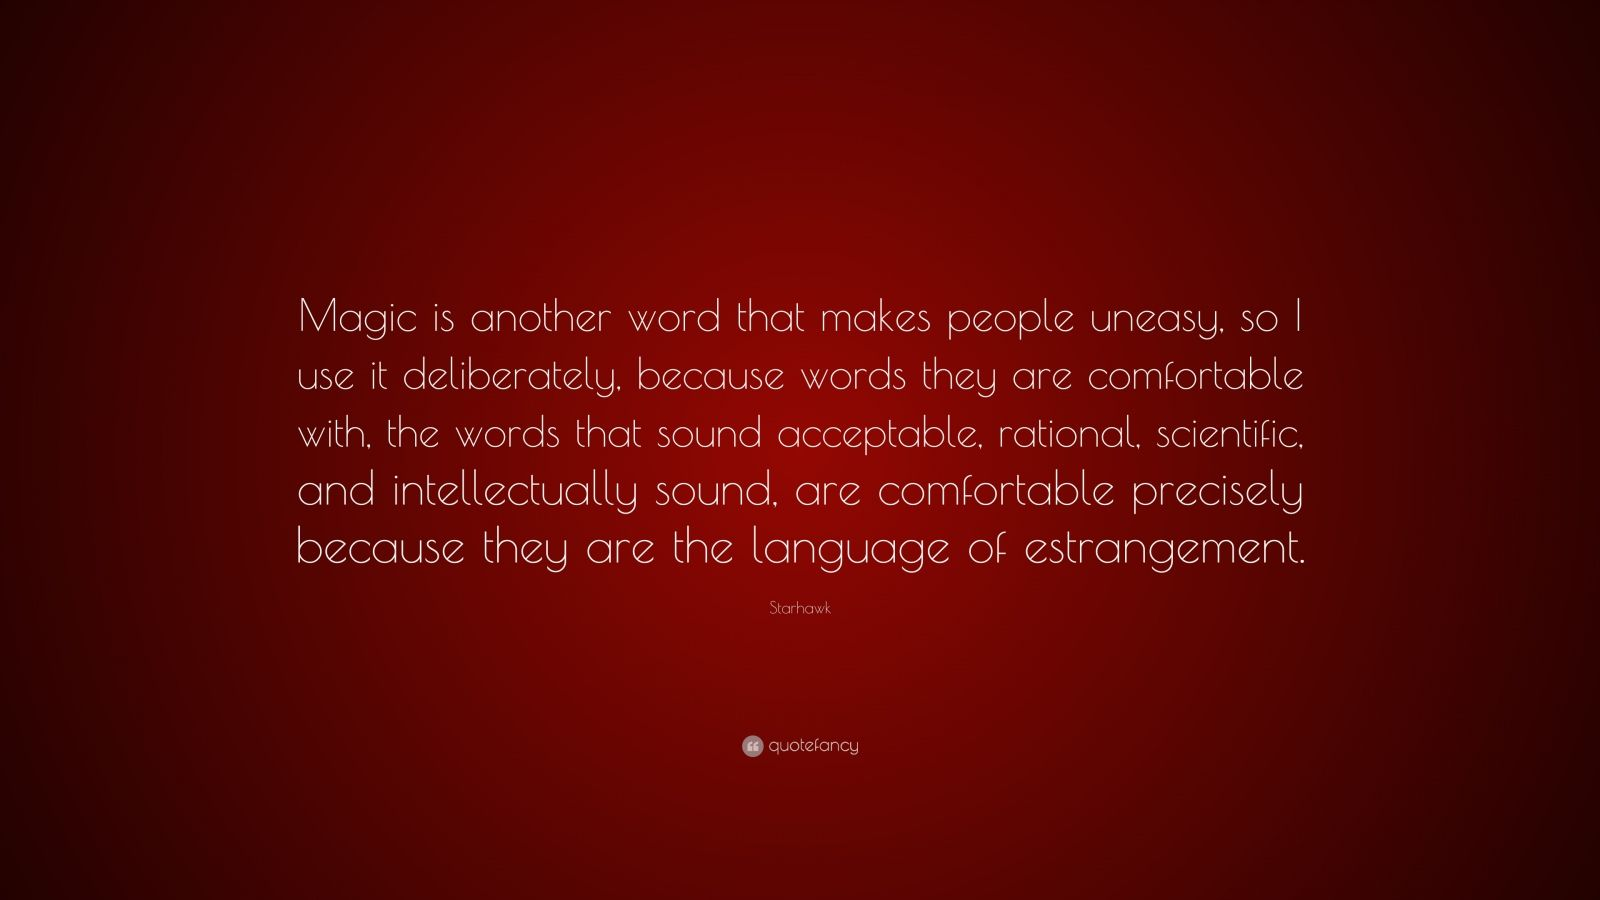 """Starhawk Quote: """"Magic is another word that makes people uneasy, so I use it deliberately, because words they are comfortable with, the words that sound acceptable, rational, scientific, and intellectually sound, are comfortable precisely because they are the language of estrangement."""""""